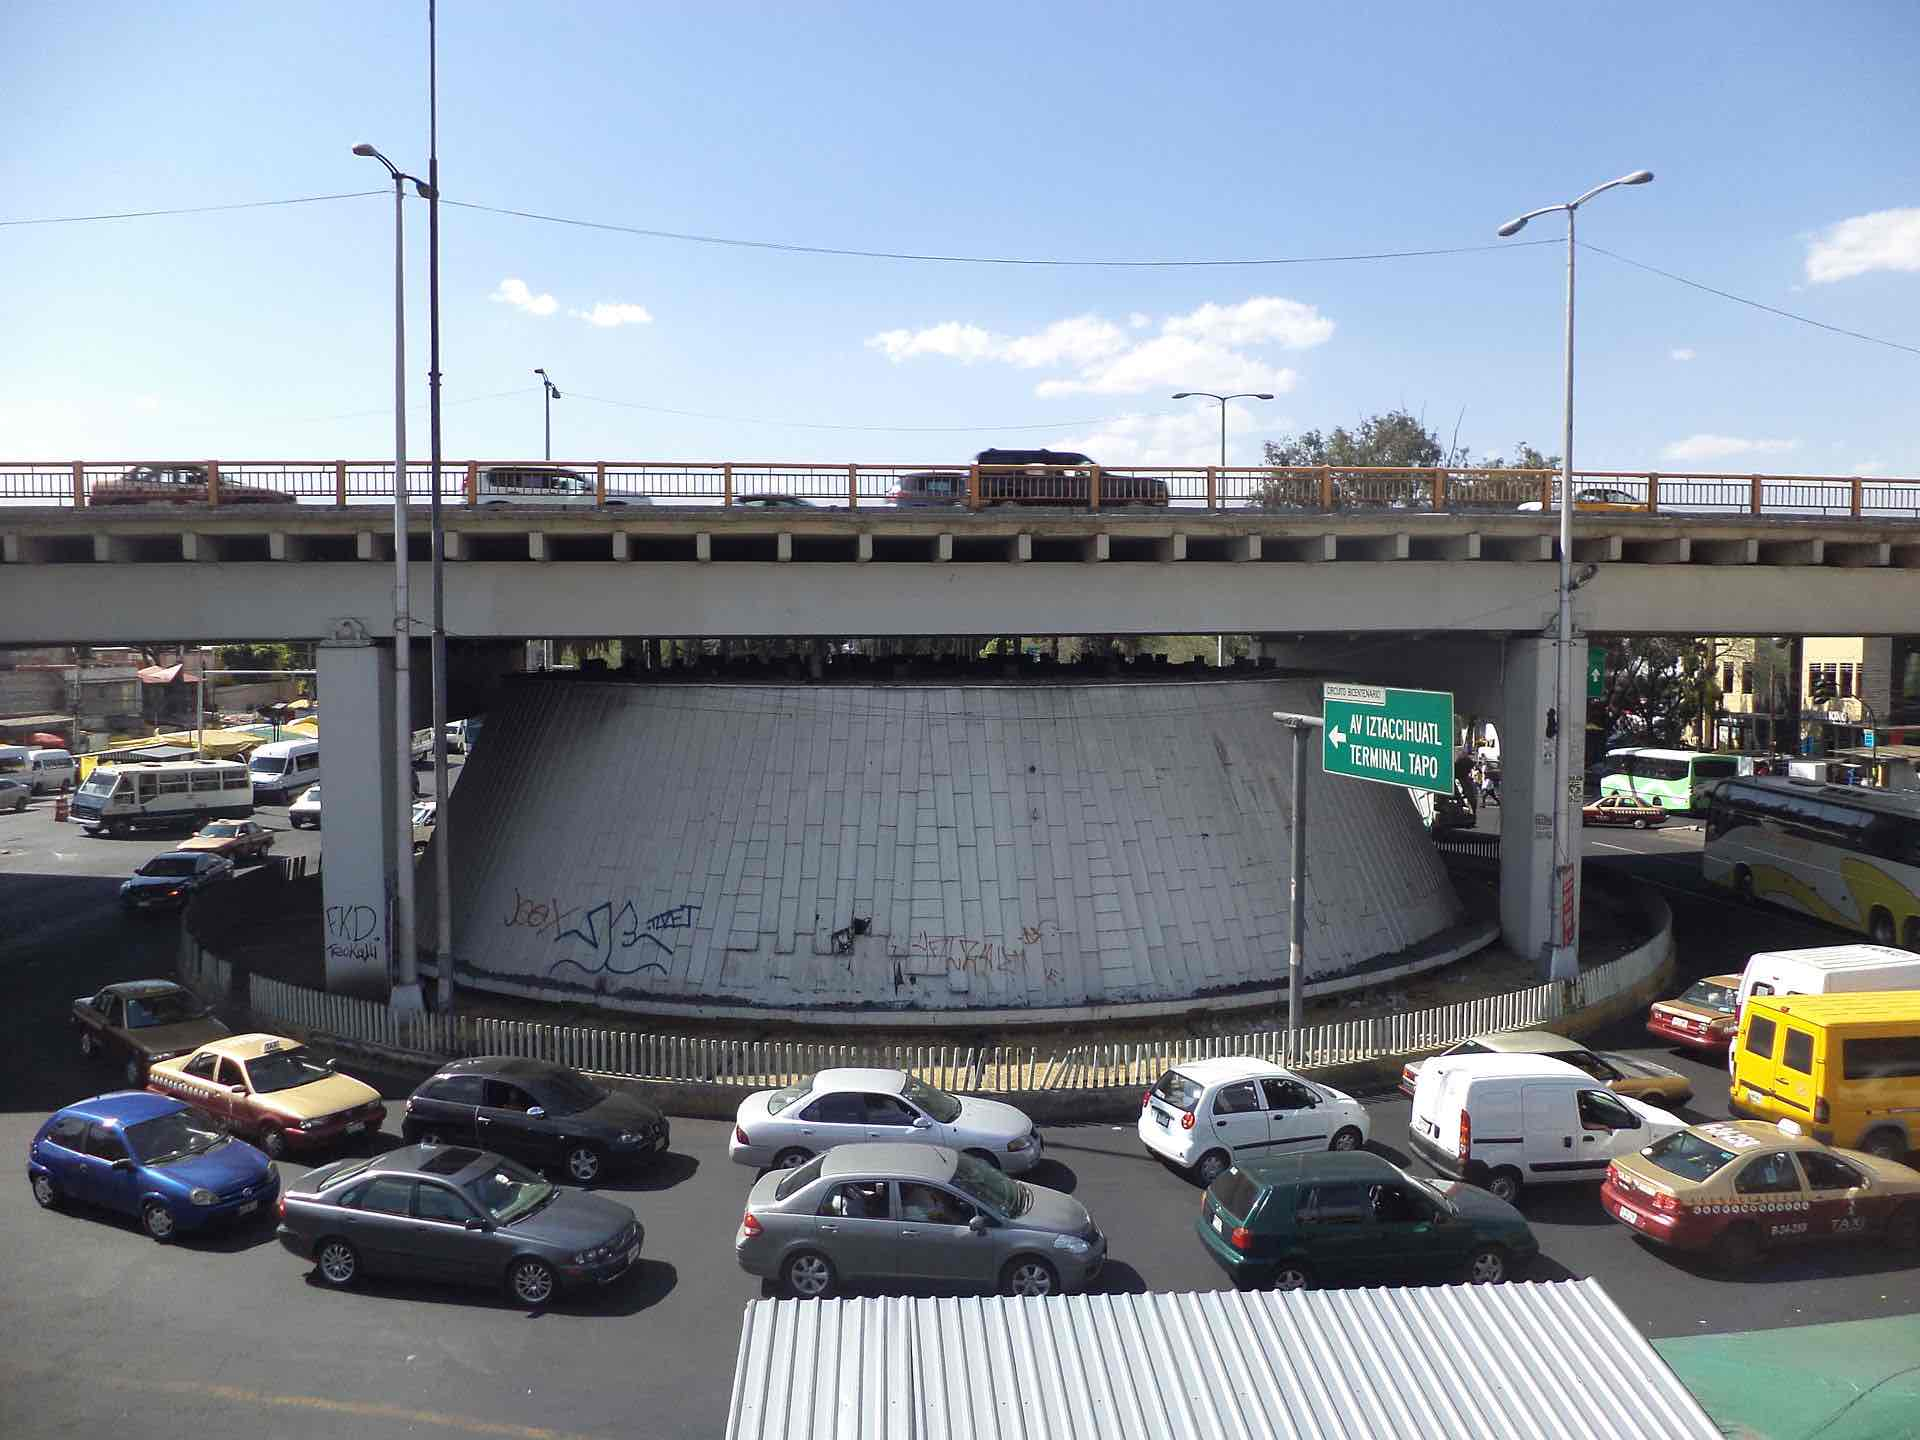 Mystery surrounds US$400mn Mexico City PPP viaduct project